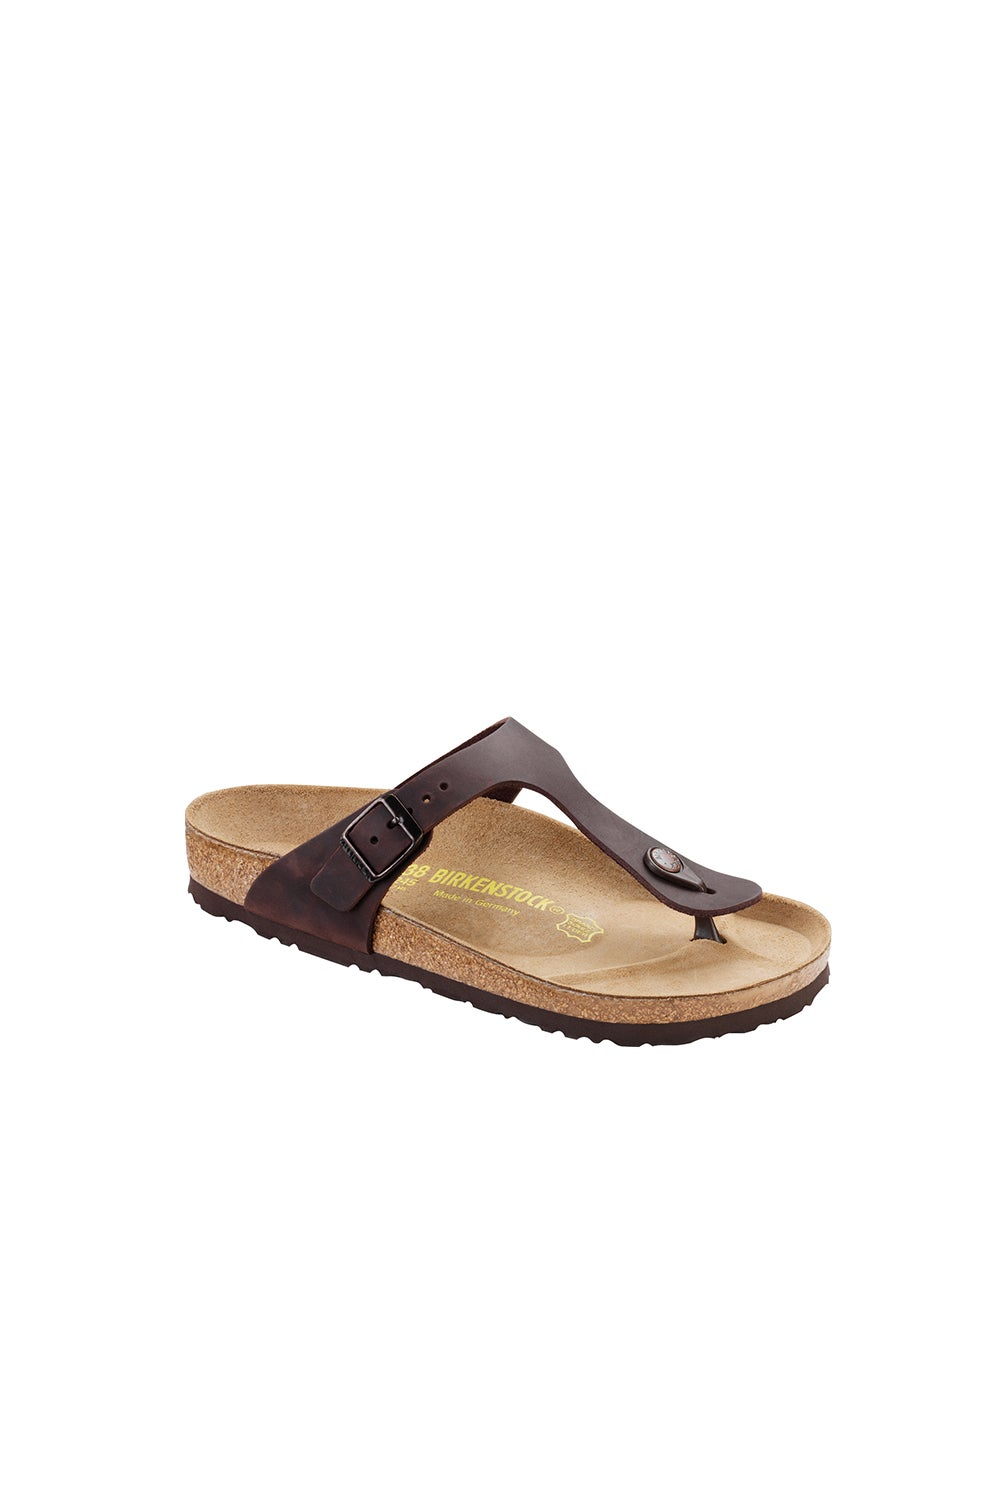 Birkenstock Gizeh Regular Fit Habana